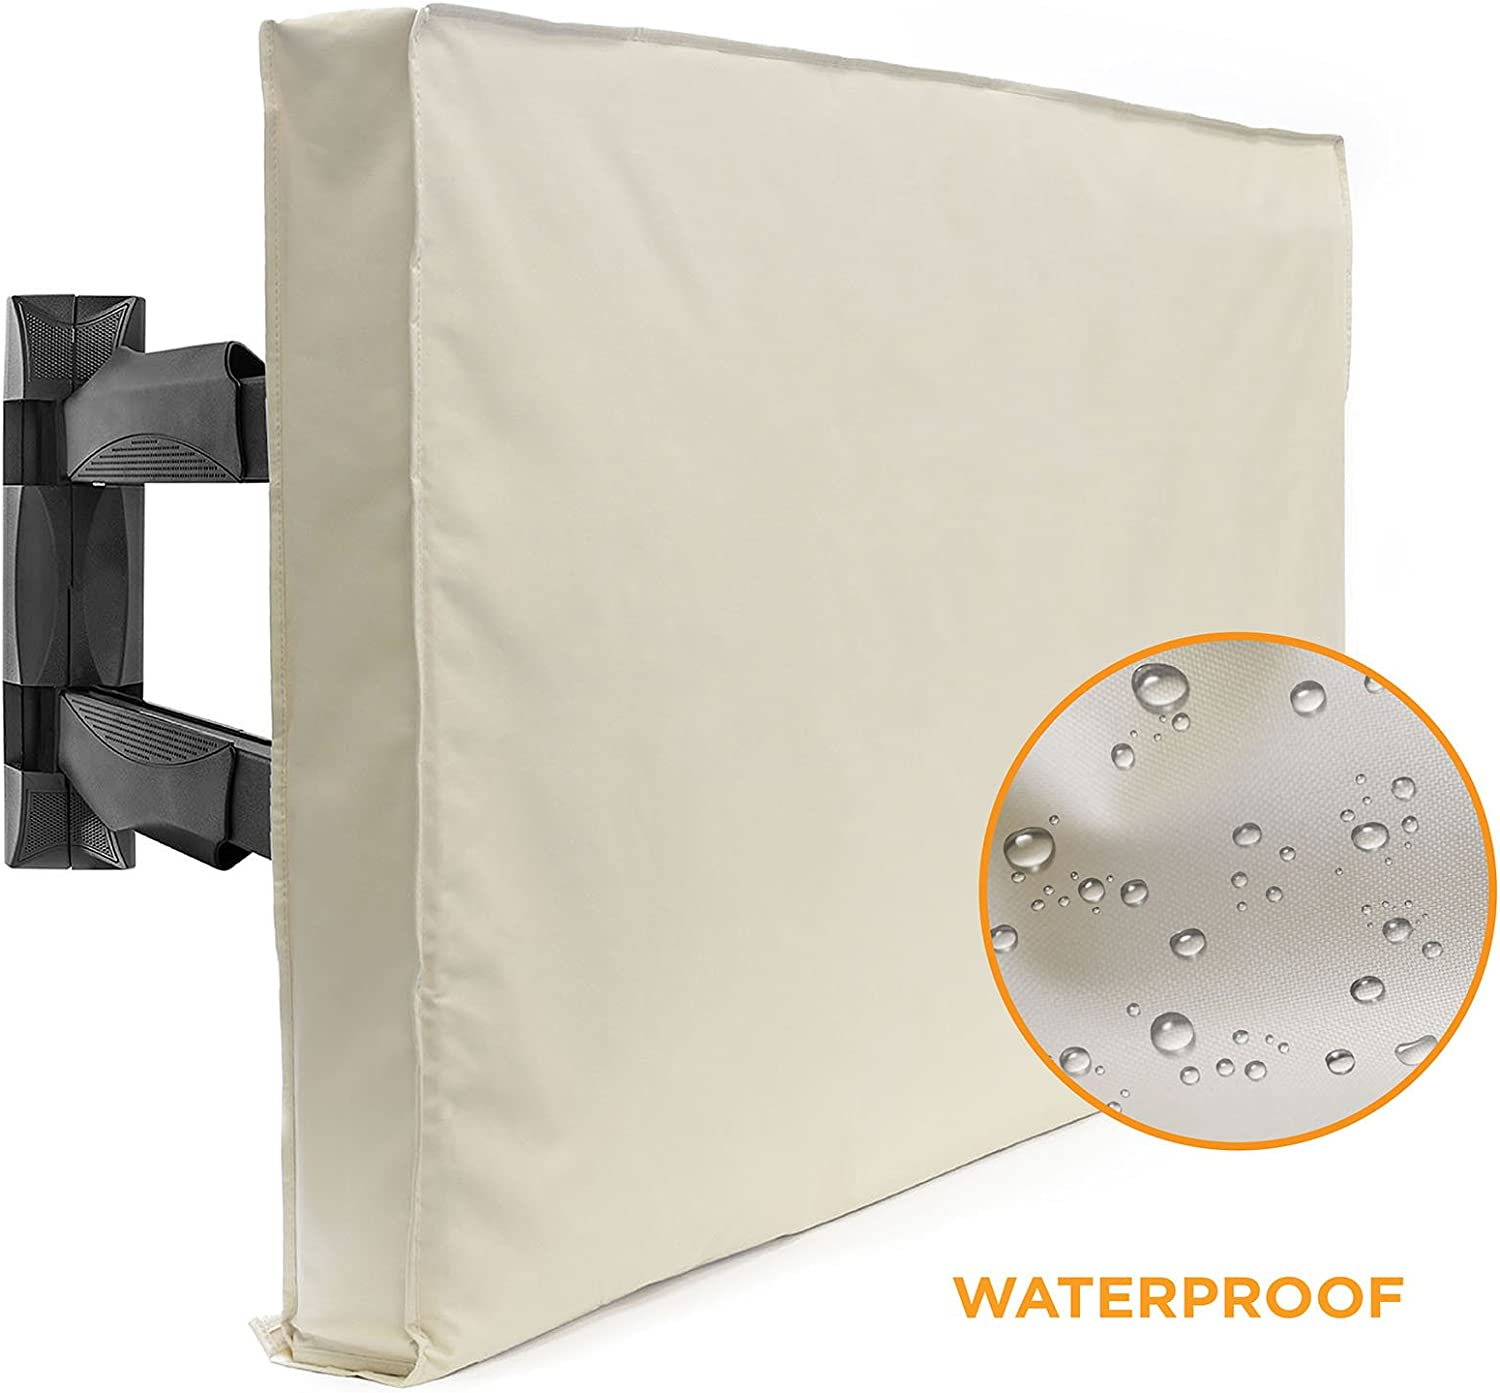 60 Model for 58-62 Flat Screens Black Weatherproof Weather Dust Resistant Television Protector Outdoor TV Cover Slim Fit